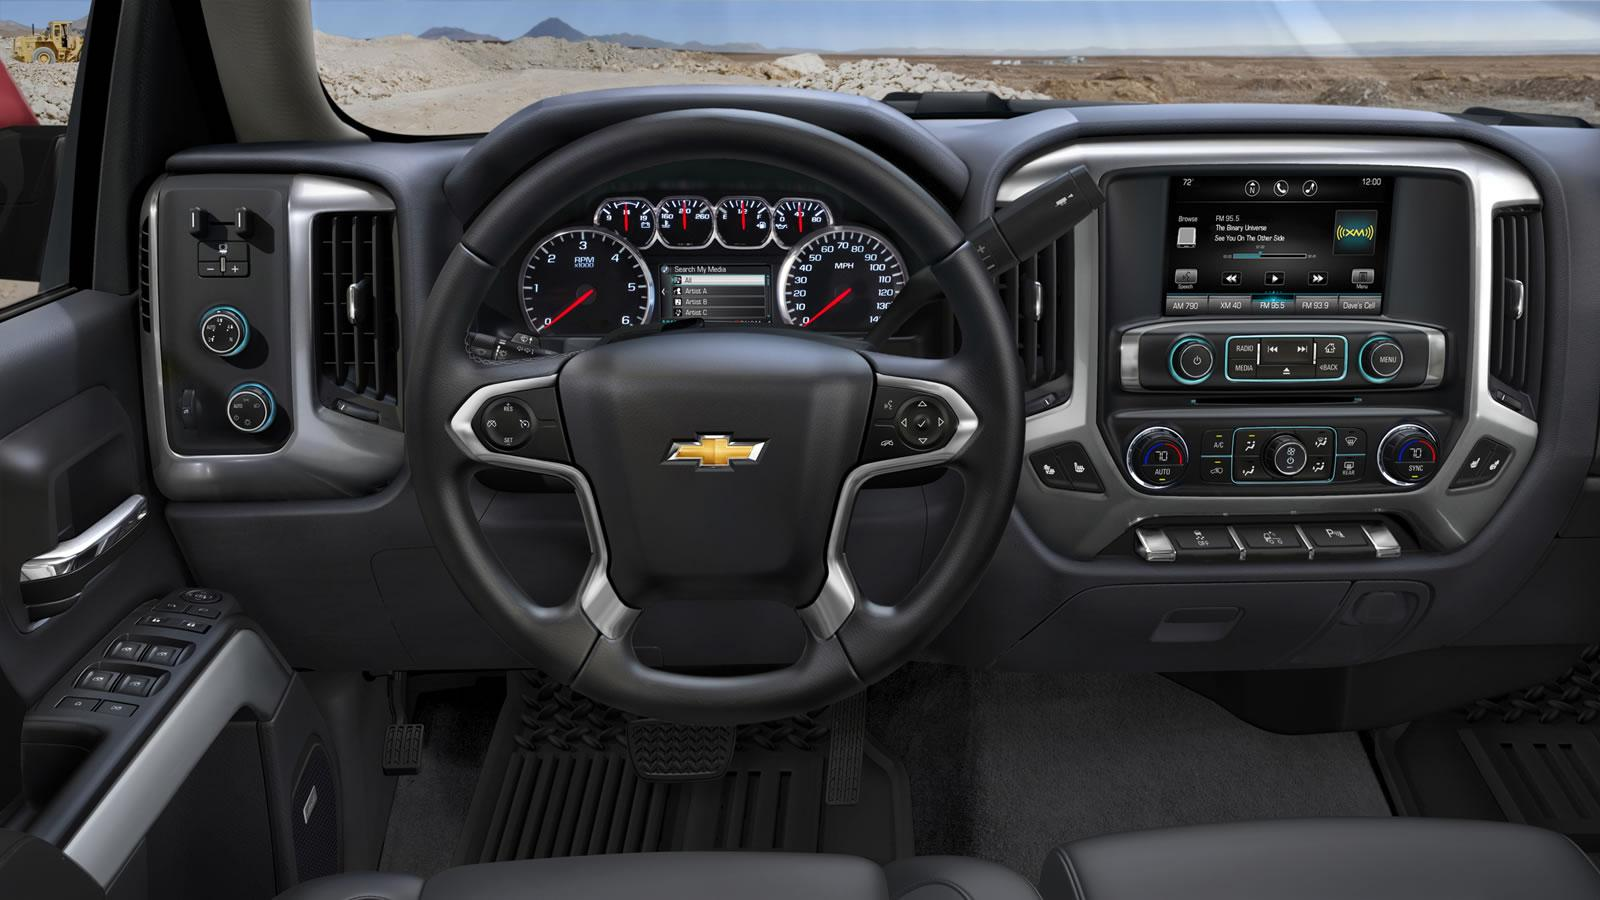 porsche steering wheel wiring diagram with Chevrolet Silverado 2014 Y Gmc Sierra 2014 Debutan En Detroit on Diagram view additionally 528 Bmw Wiring Diagrams besides Gsmoon Wiring Diagrams in addition Fuse panel layout moreover Sanwa Joystick Wiring Diagram.